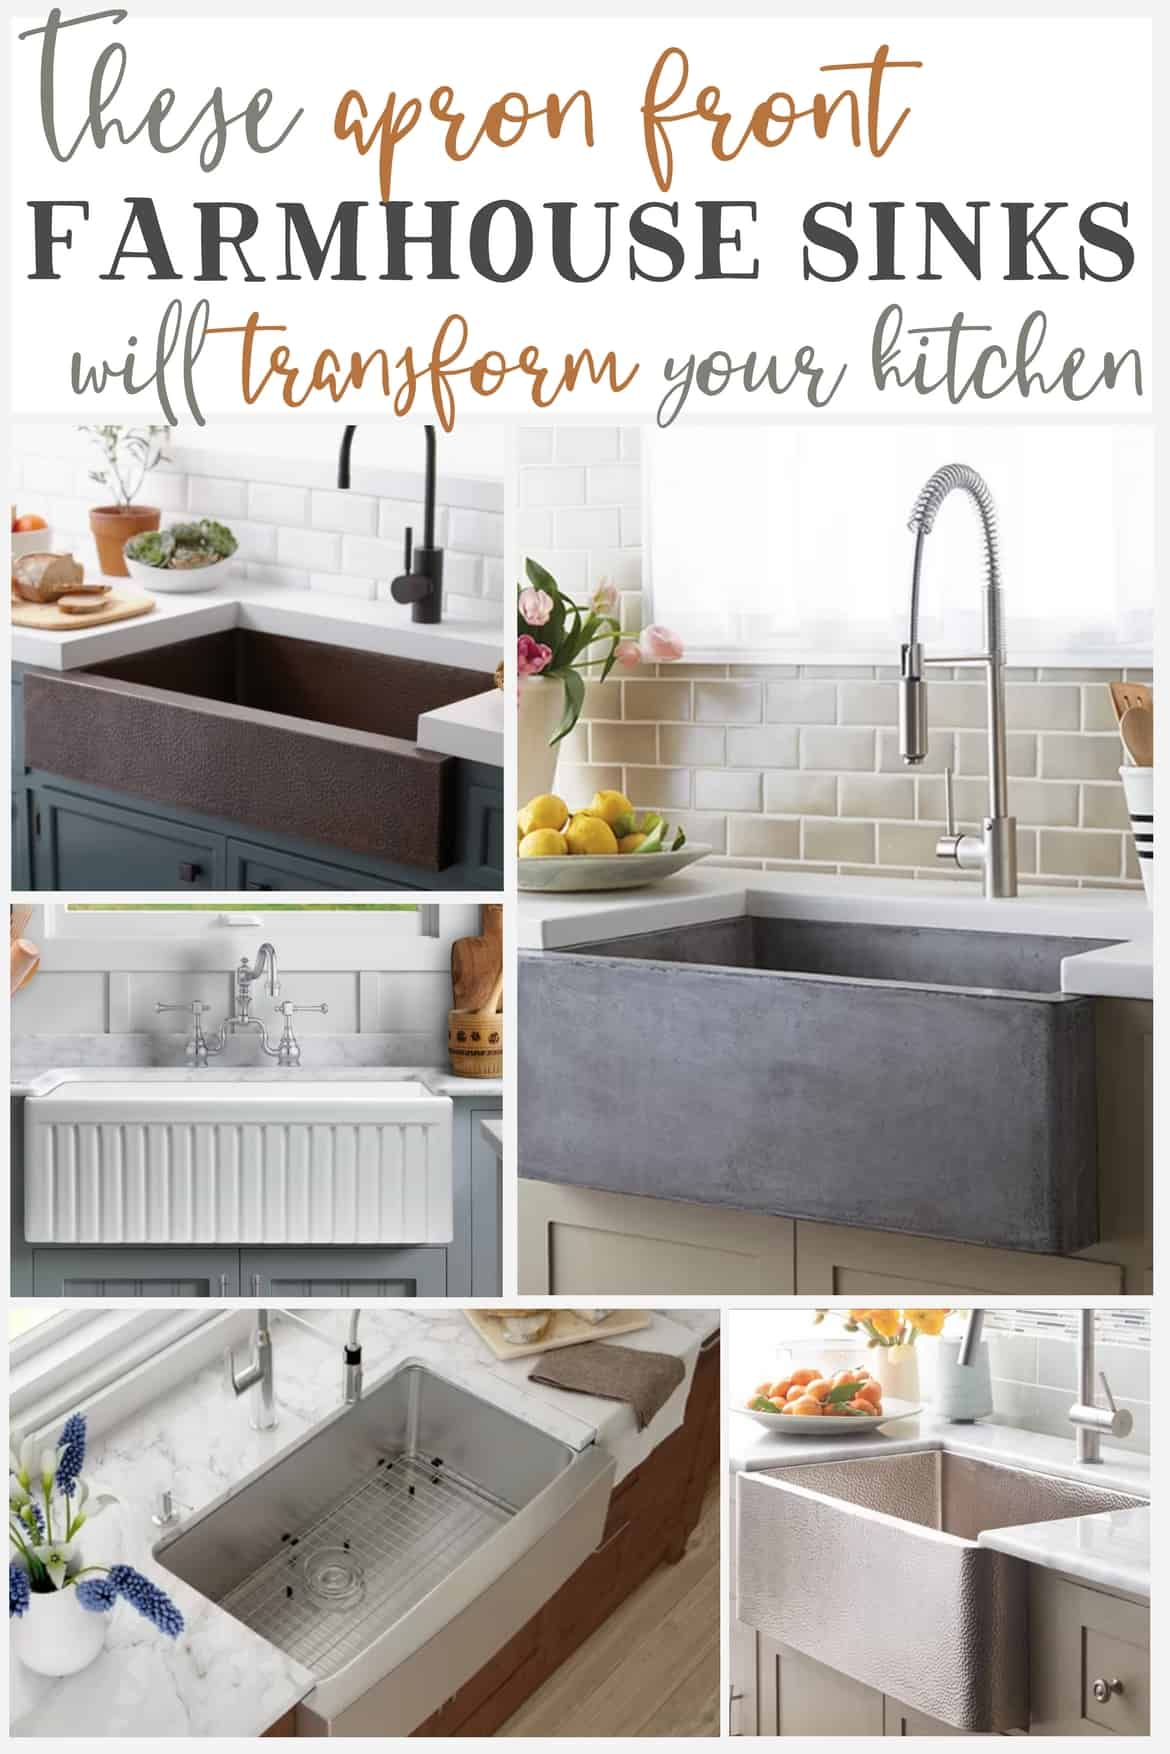 I M Lora Of Craftivity Designs And When Creating Our Home Focus On Function Before Style So Picking Out The Prettiest Sink